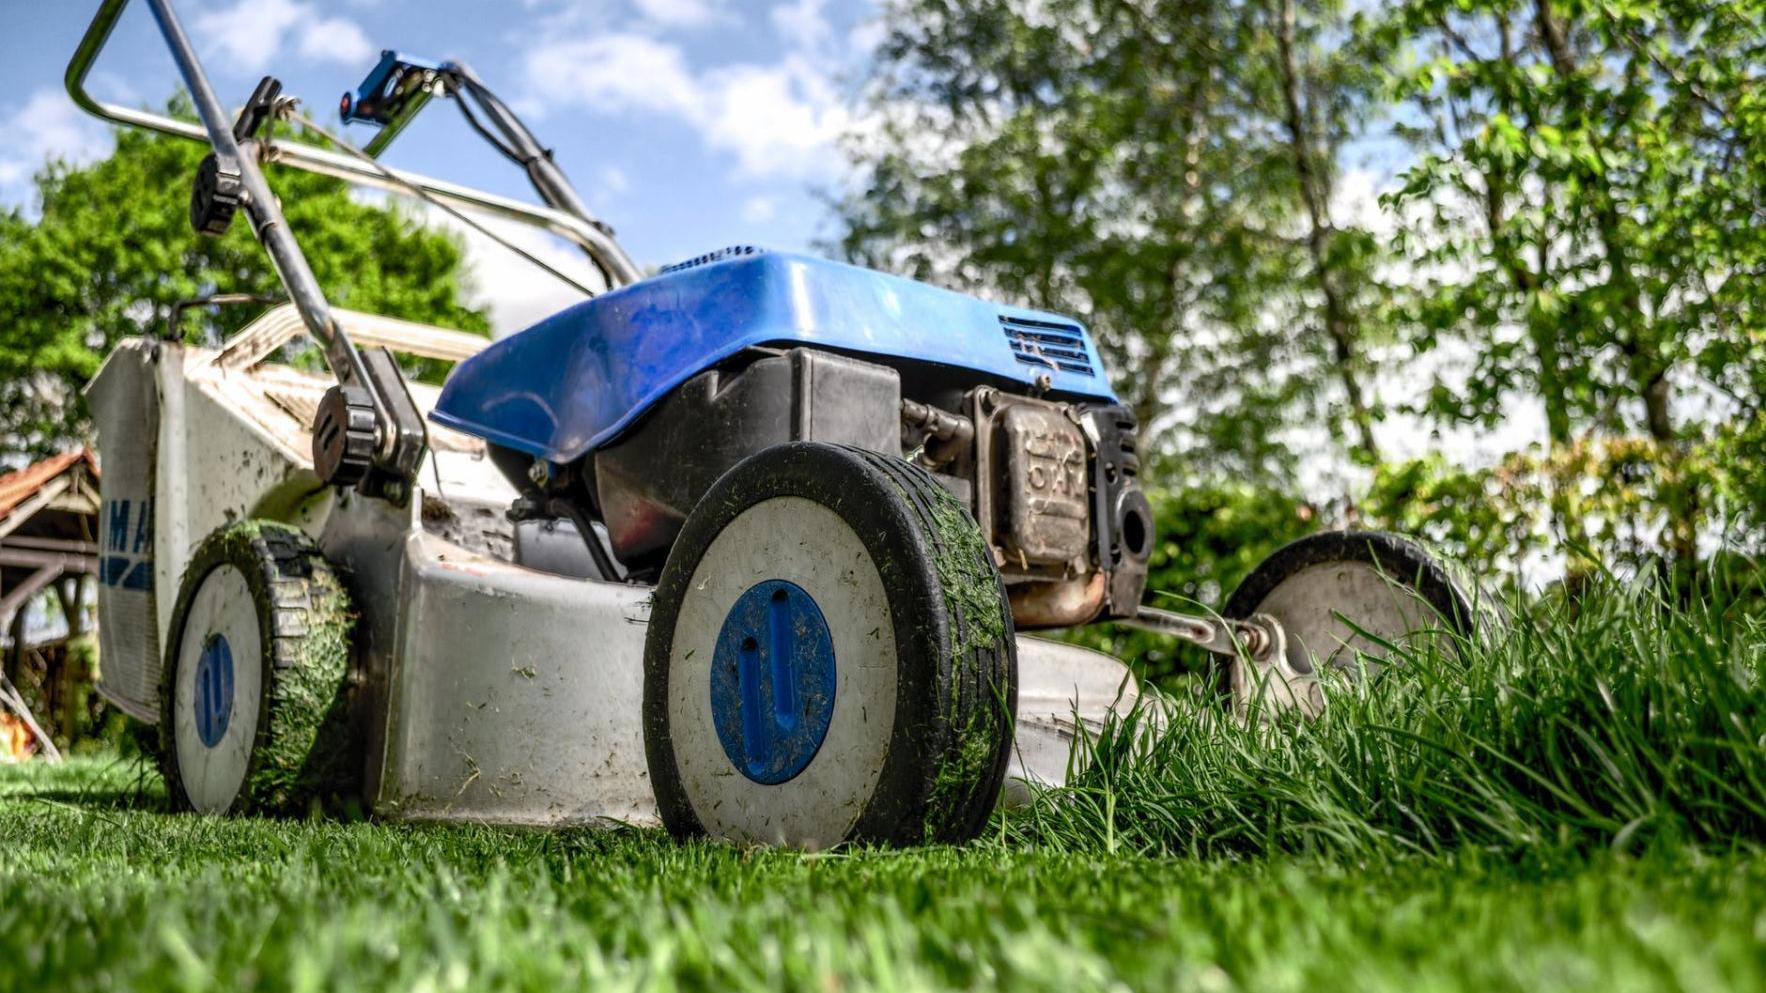 Should I sharpen or replace my lawn mower's blades?